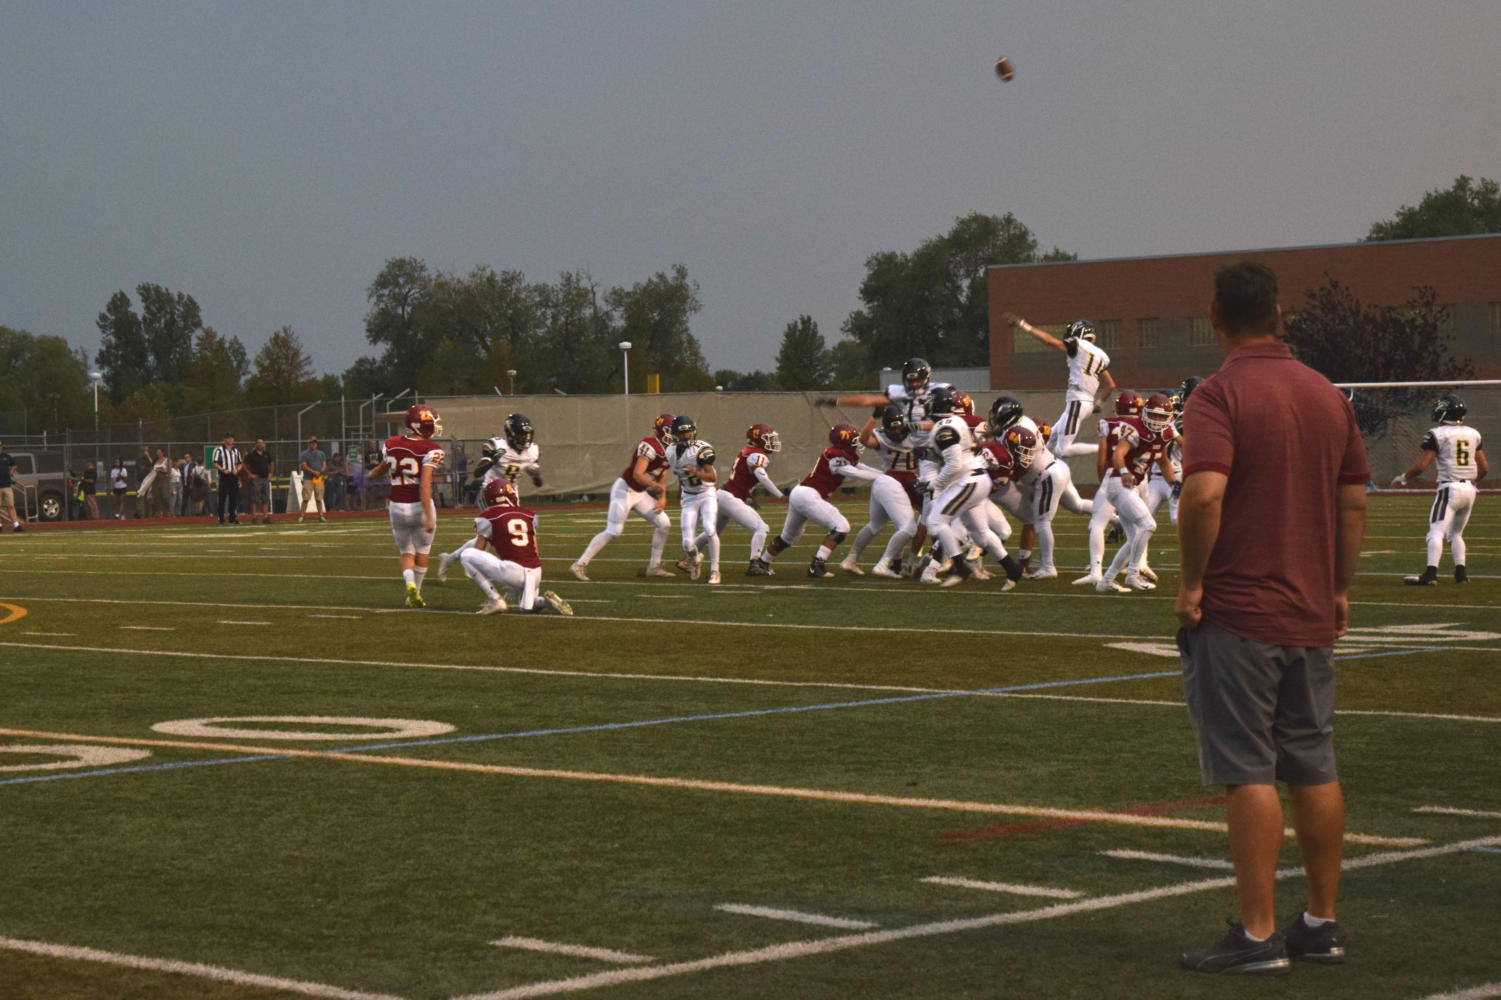 Rocky puts points on the board with a field goal during the first half of the game.